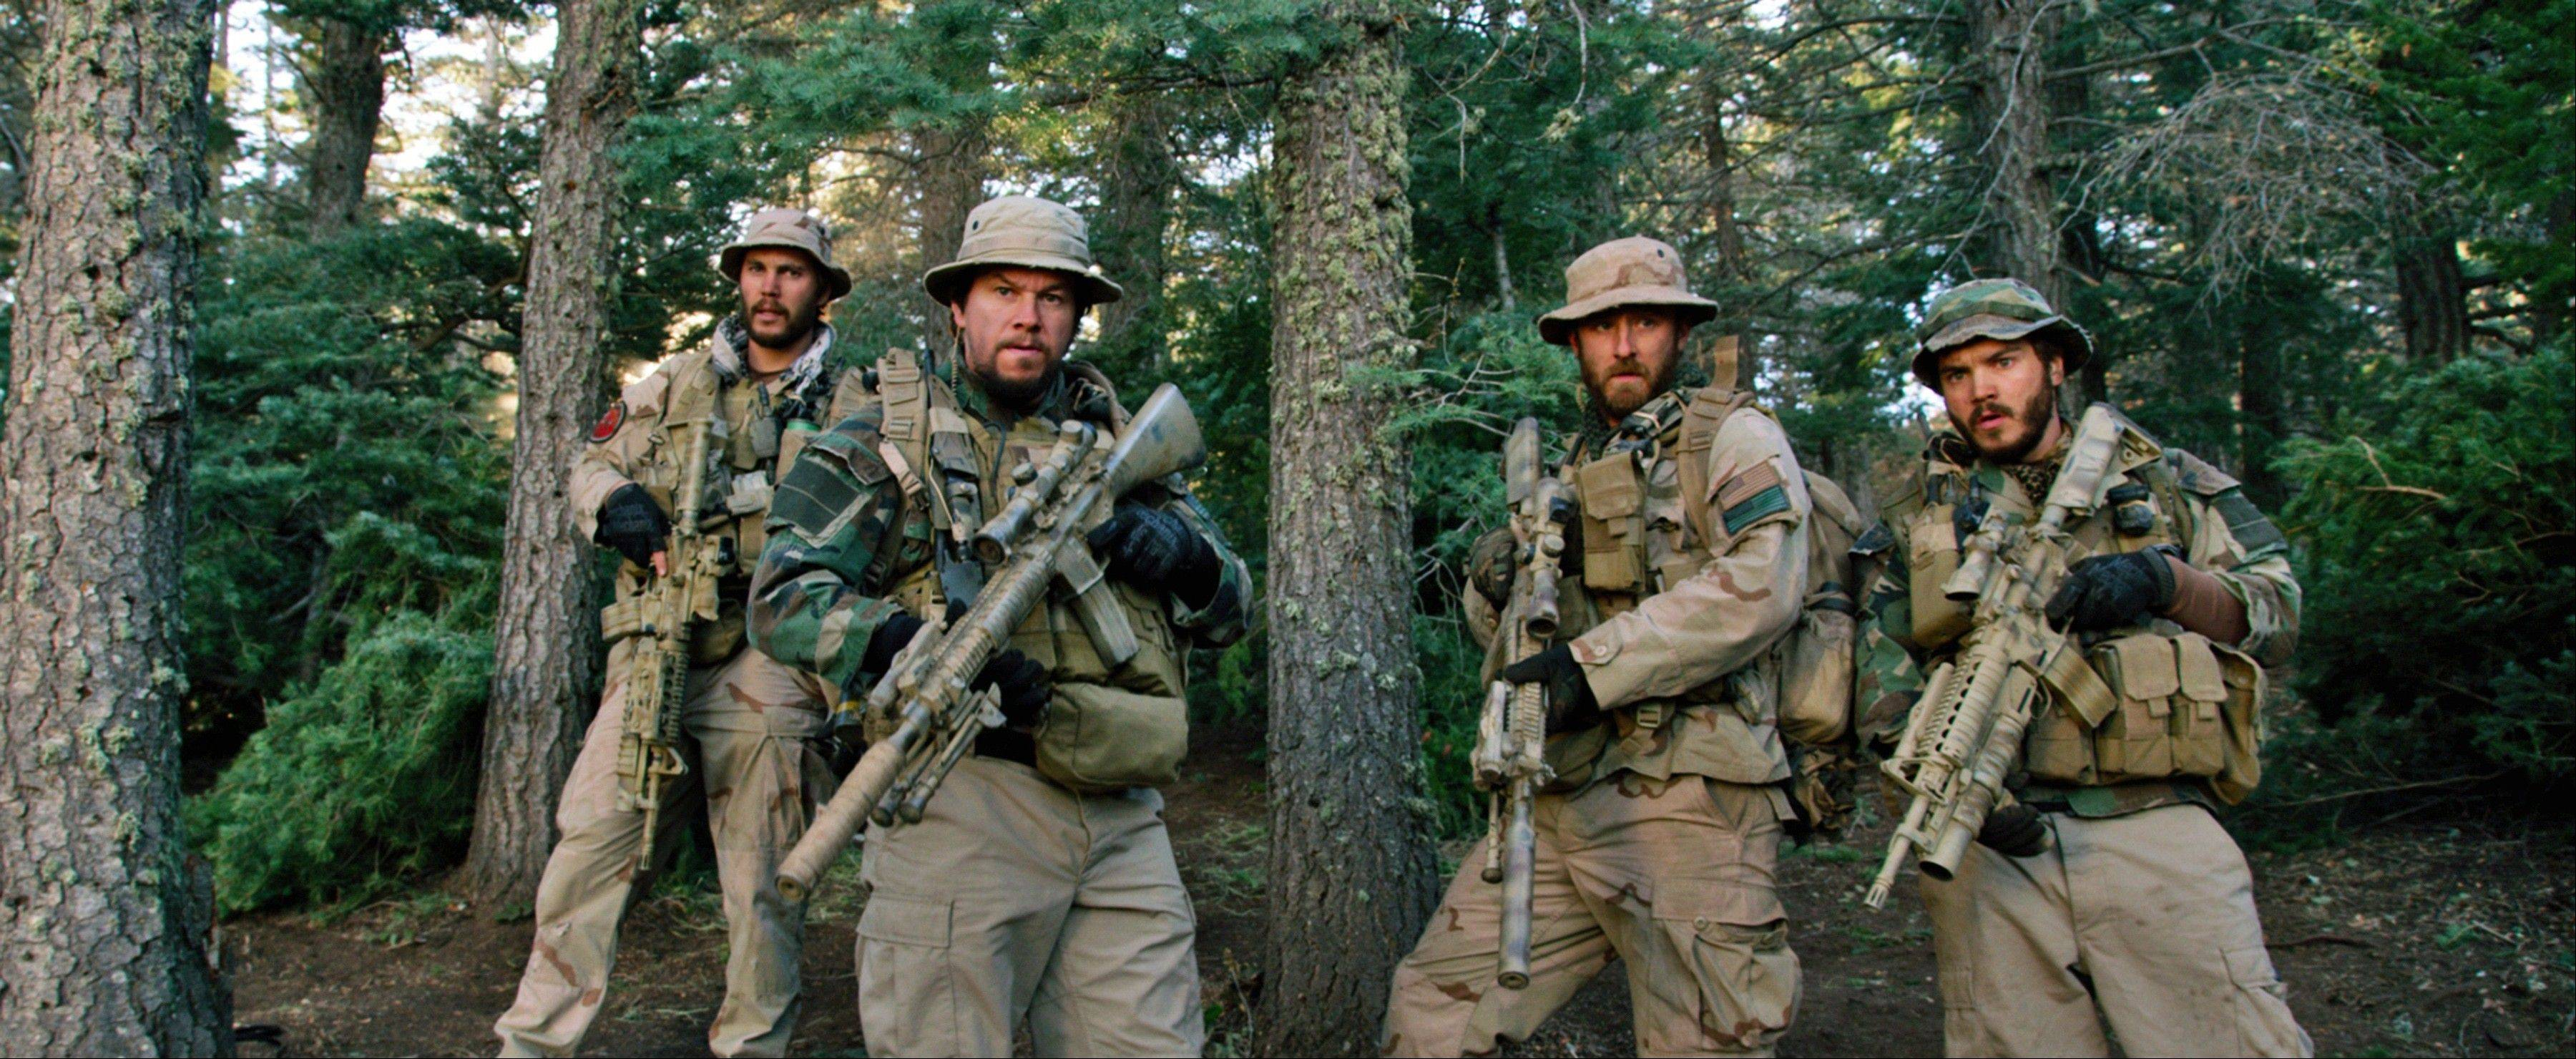 Taylor Kitsch, left, plays Michael Murphy, Mark Wahlberg is Marcus Luttrell, Ben Foster plays Matt �Axe� Axelson and Emile Hirsch is Danny Dietz in �Lone Survivor,� which topped this weekend�s box office.